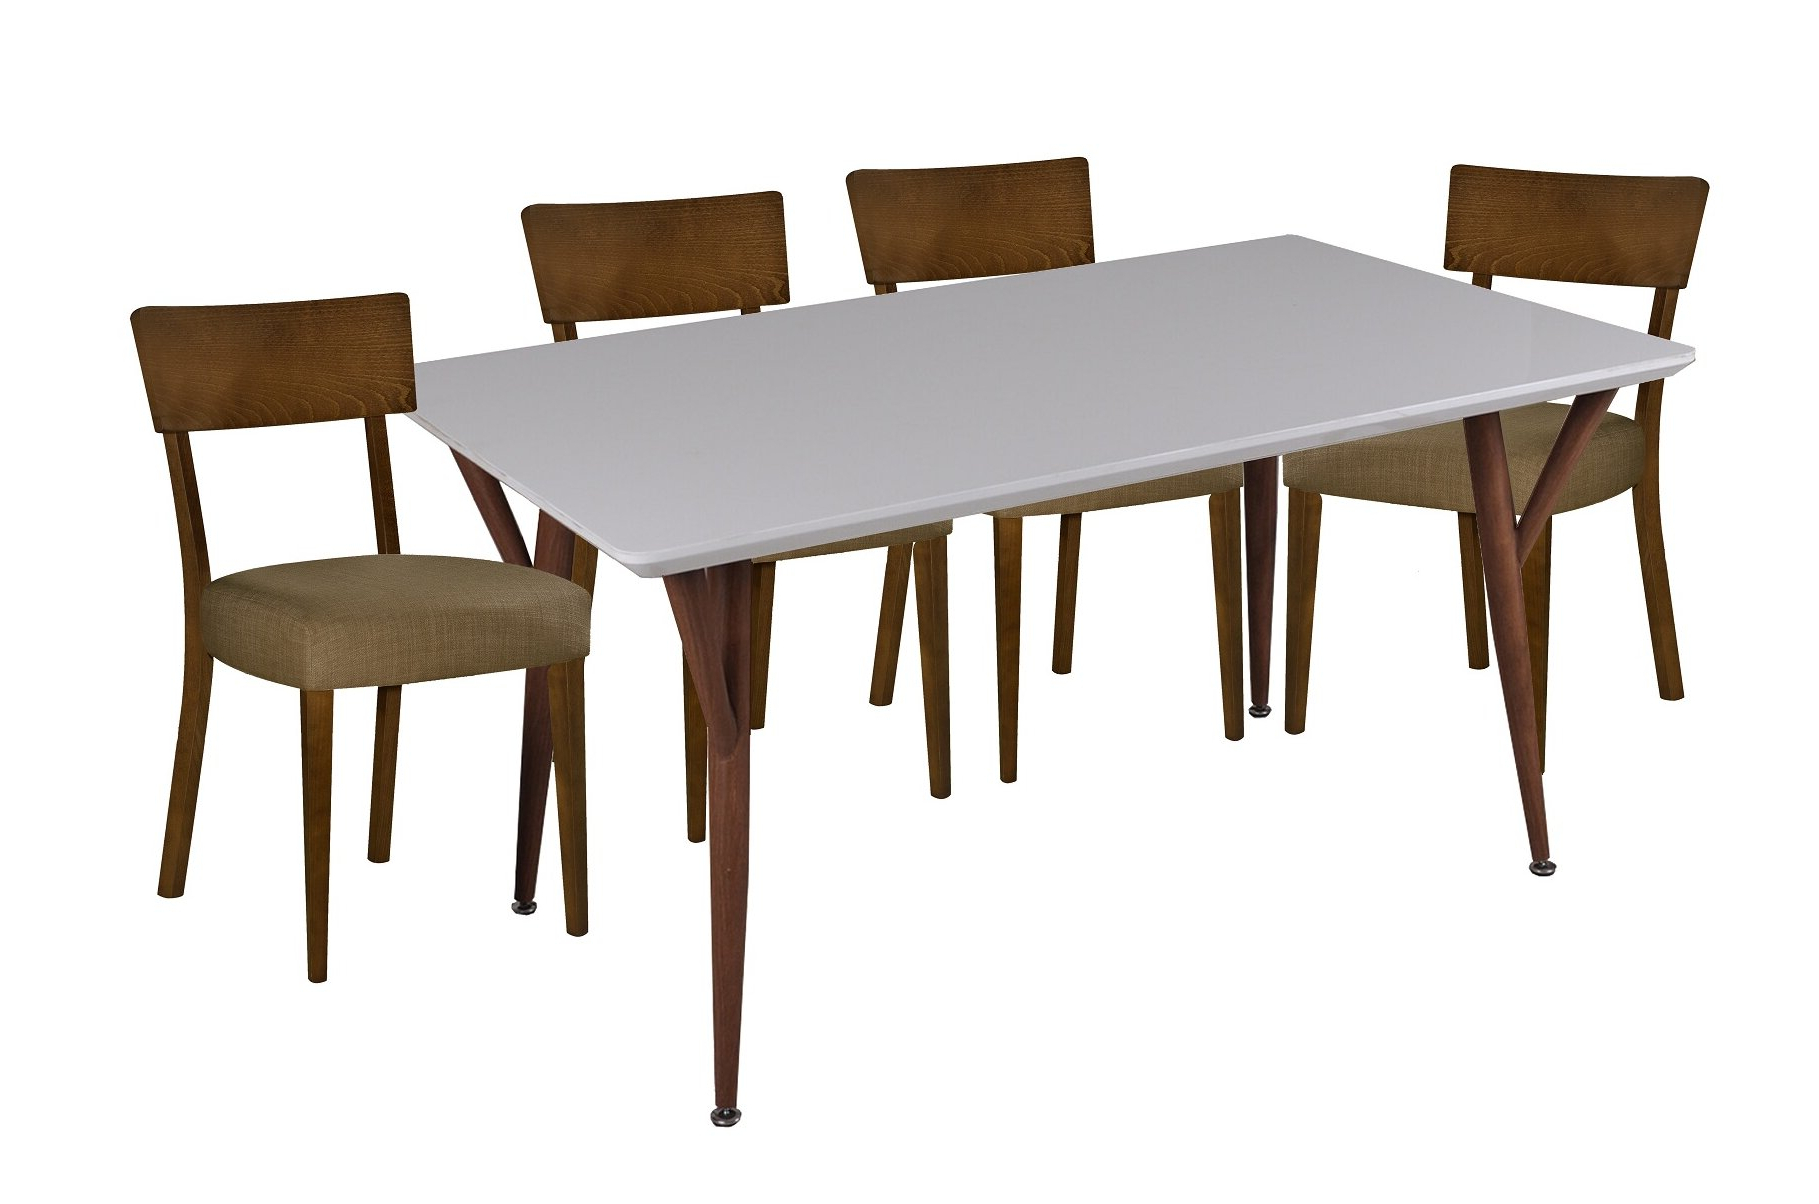 Hoosier 5 Piece Dining Set Intended For Well Known Turnalar 5 Piece Dining Sets (View 4 of 20)